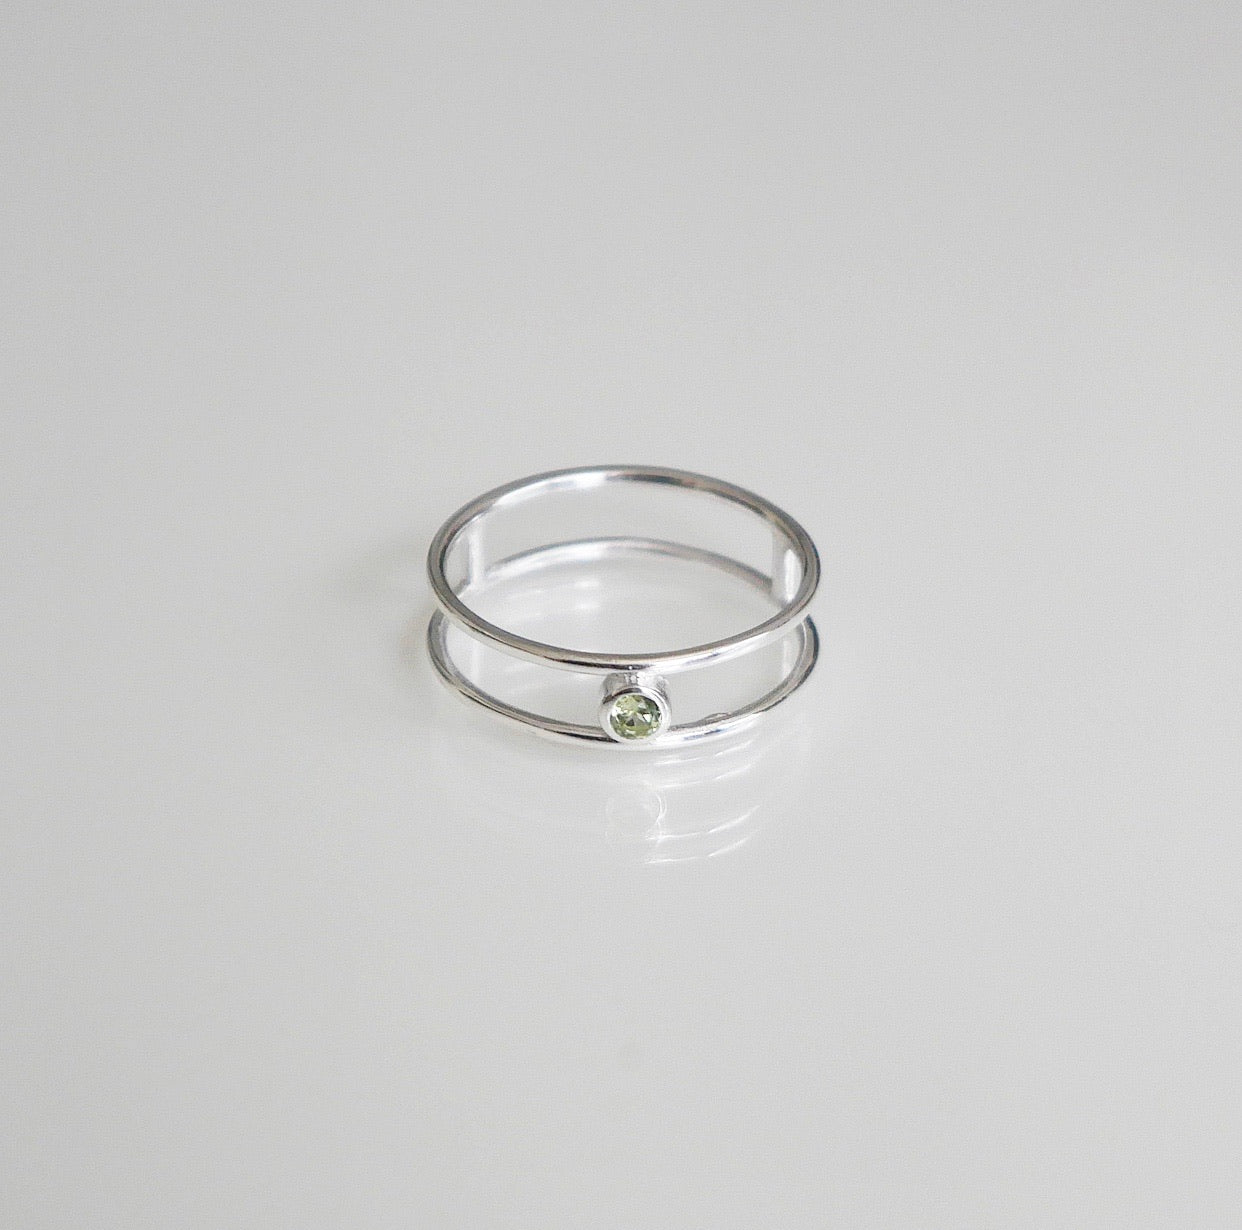 Peridot ring .925 sterling silver peridot ring genstone ring in sterling silver double wire ring with gemstone stack ring peridot stack ring